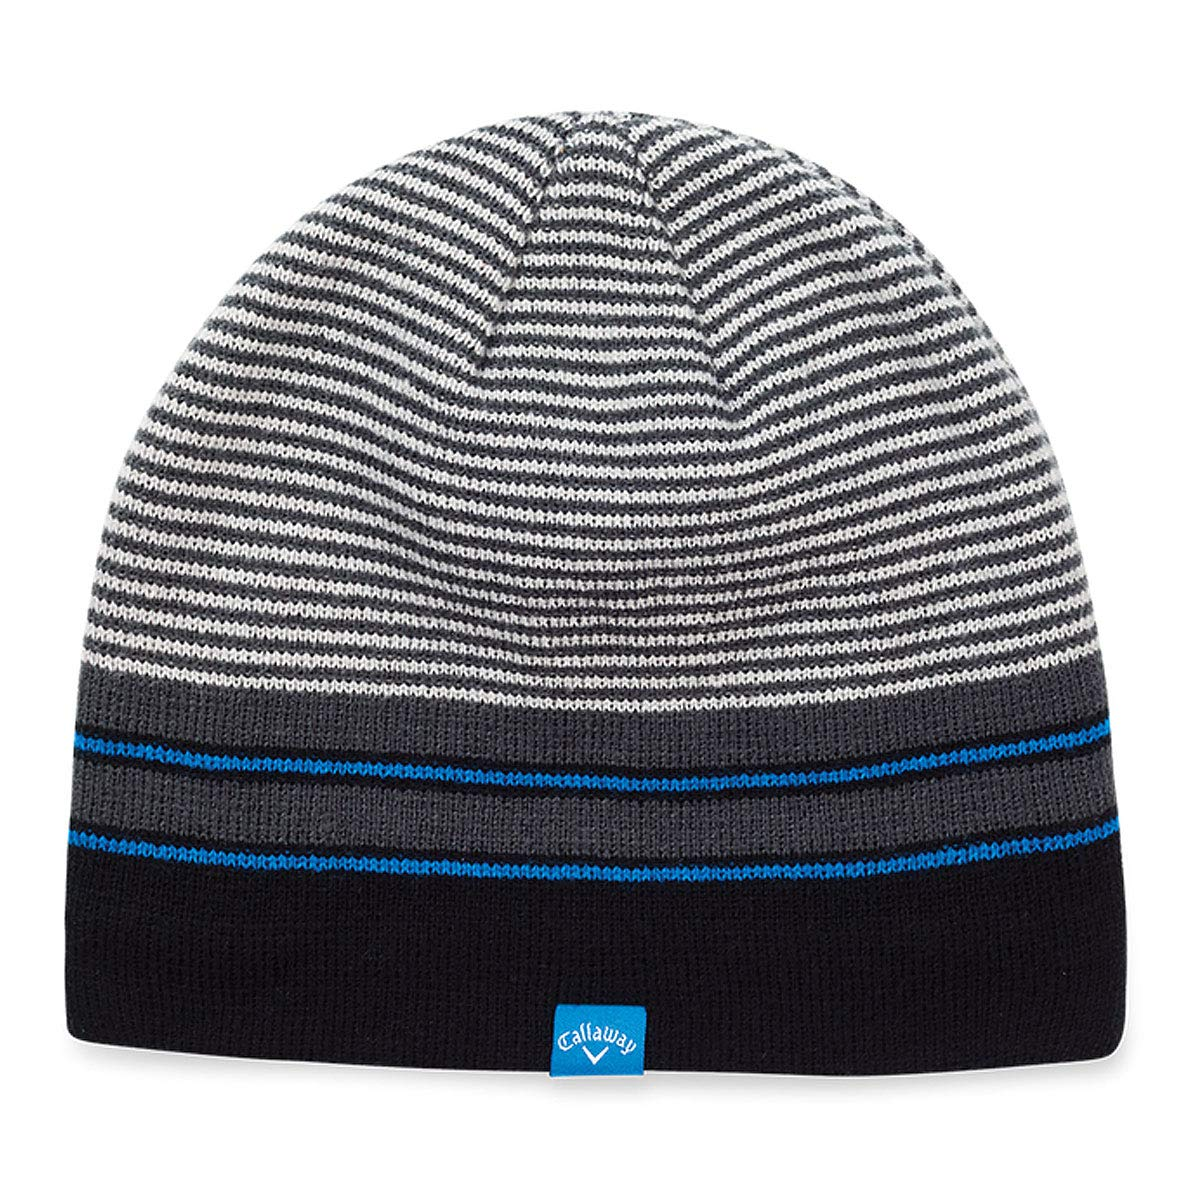 672139c37cd Callaway Golf Winter Chill Beanie Headwear  Amazon.co.uk  Sports   Outdoors